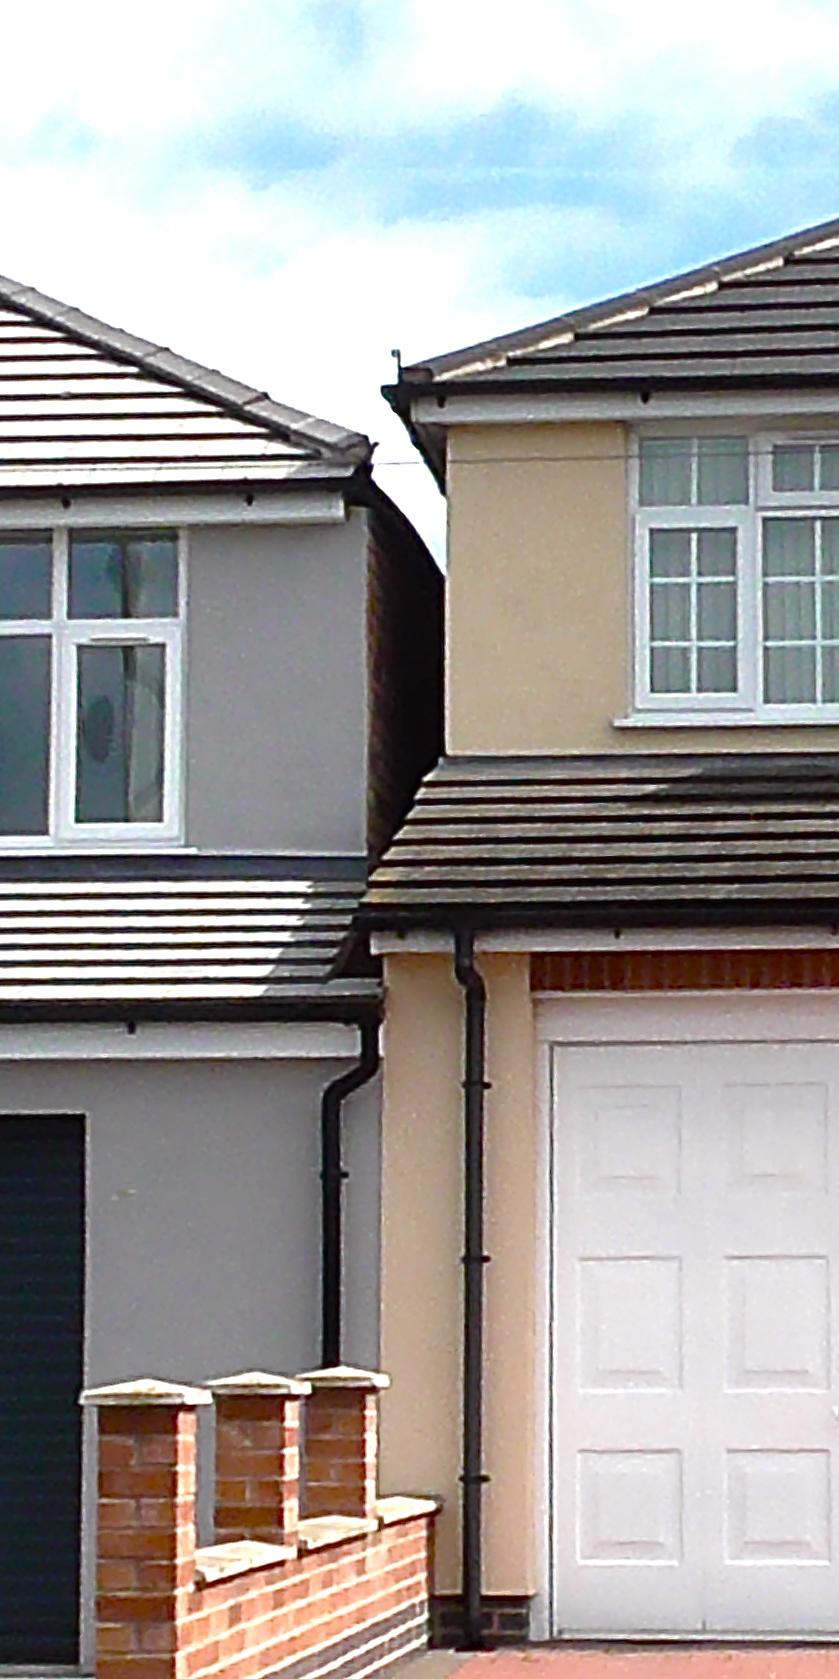 houses built close together, party wall scenario